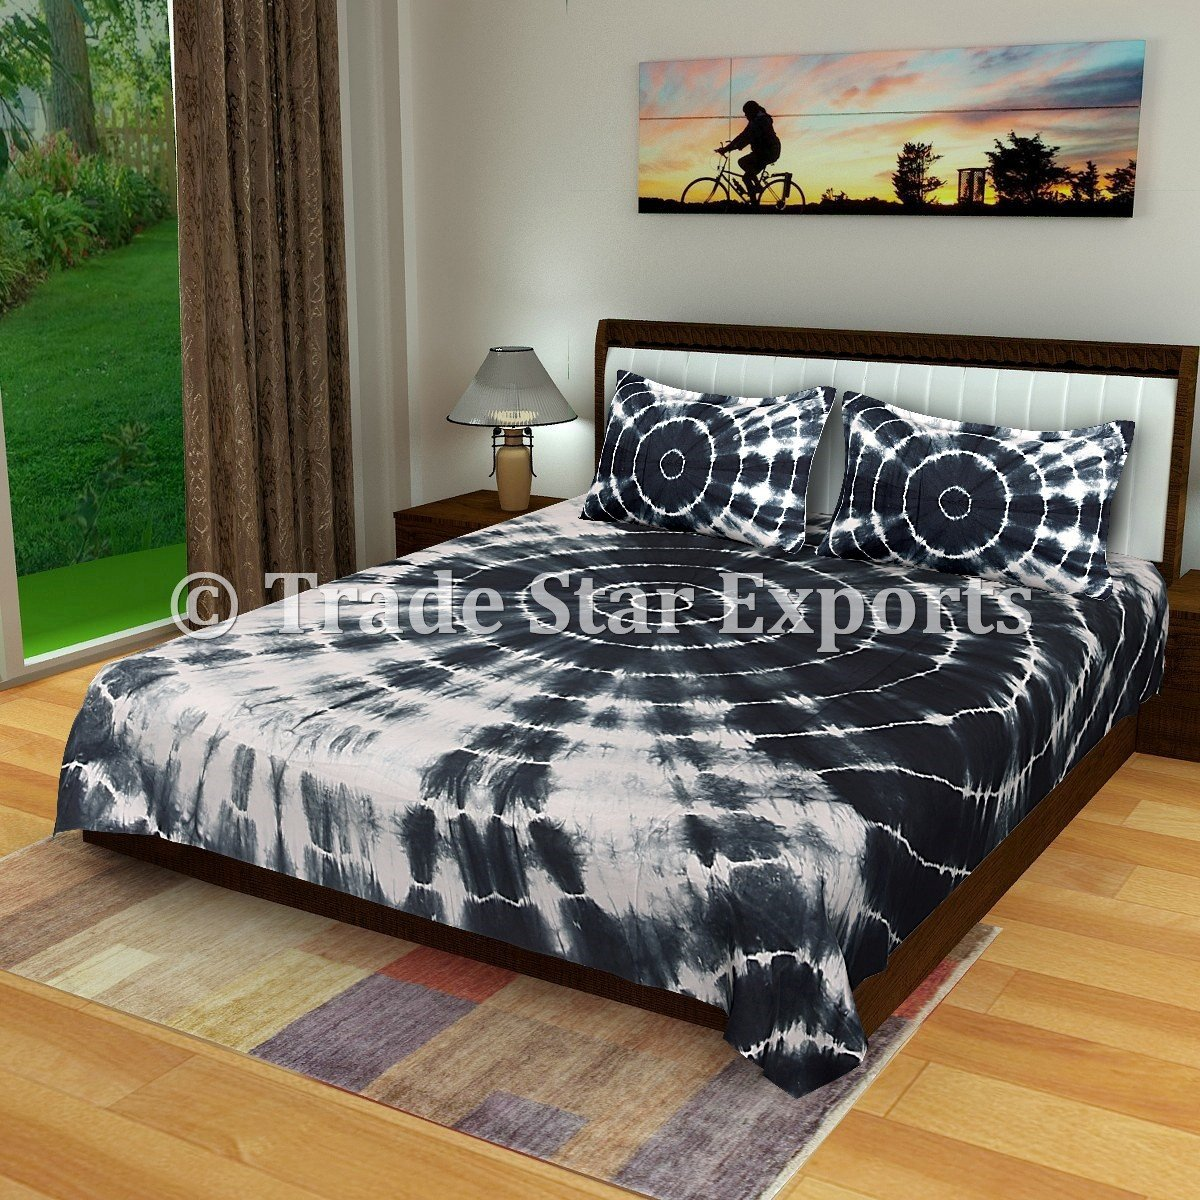 Trade Star Exports Indian Shibori Bedspread, Indigo Bed Cover, Tie Dye Queen Bedding Set, Handmade Cotton Bed Sheet 2 Pillow Cases (Pattern 1) TS-HB-329